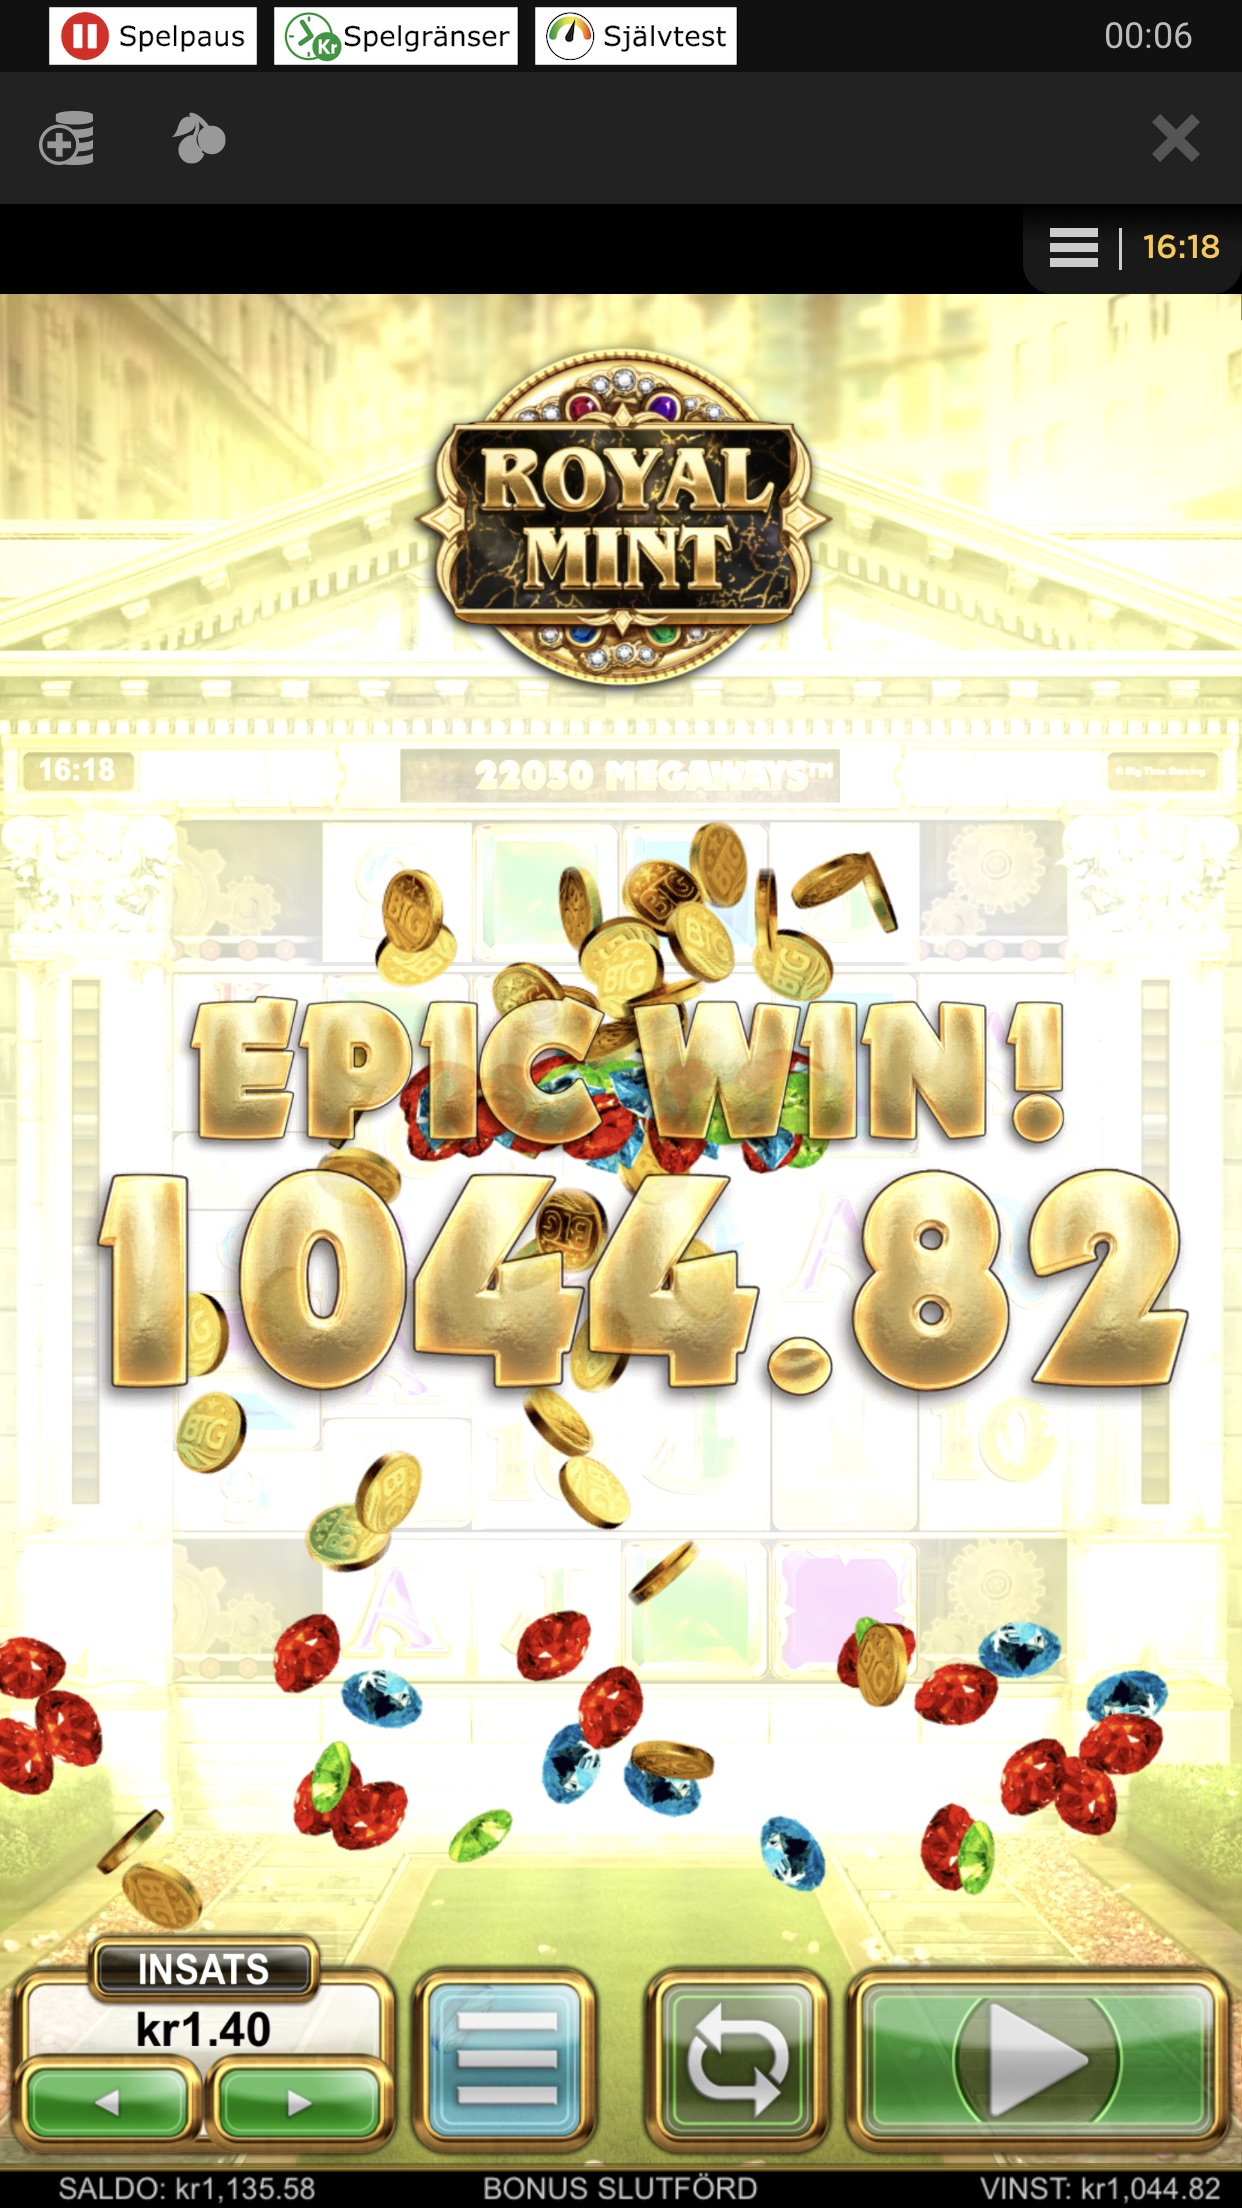 I was going to grind royal mint, but after 5 spins I got regular bonus and payed around 800x 🤩